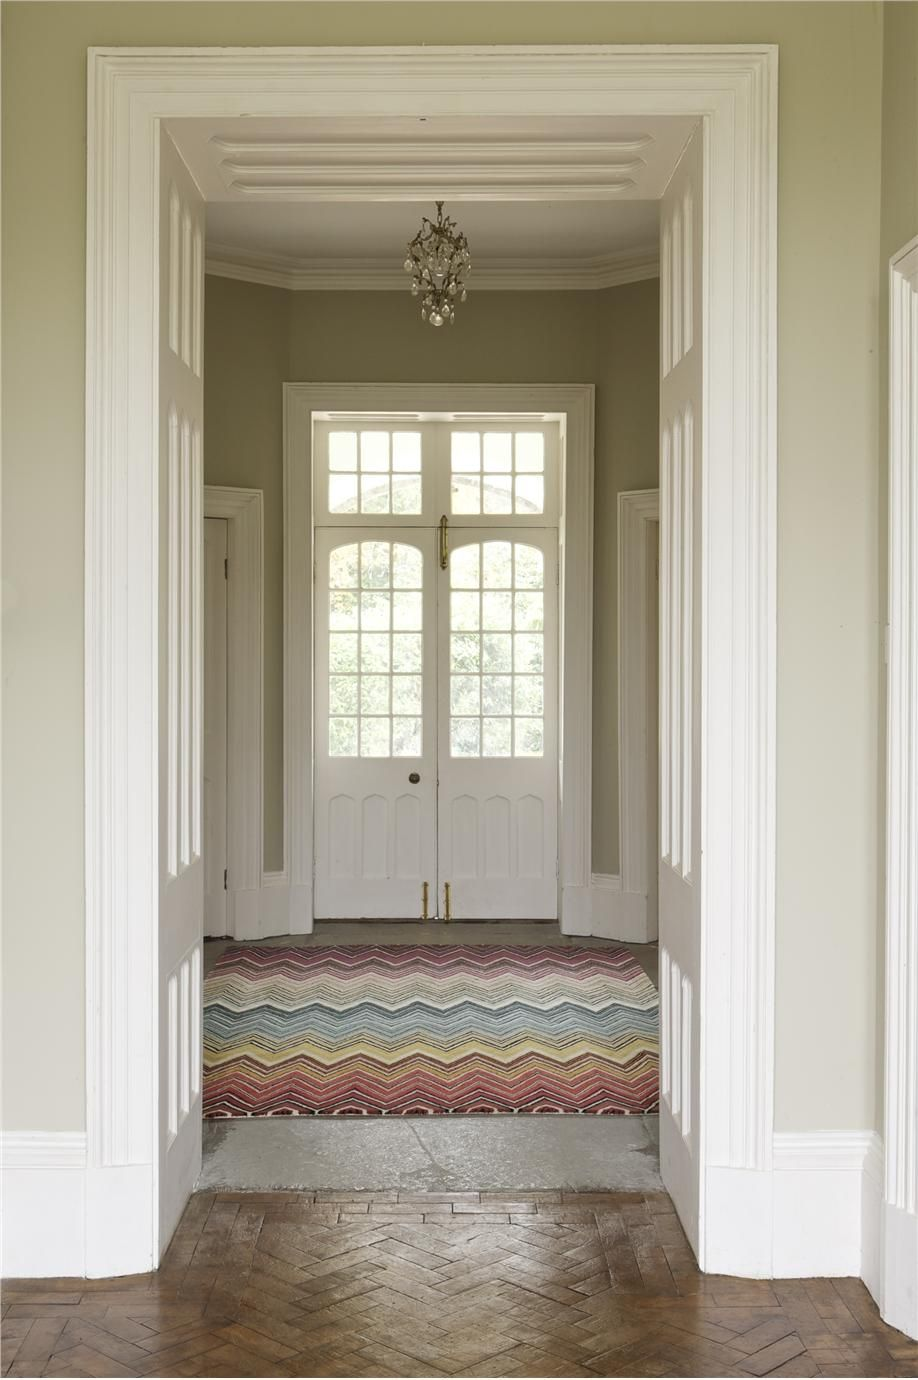 North Facing Living Room Colour Farrow Ball Inspiration For Entry Hall Hermitage Condo Paint